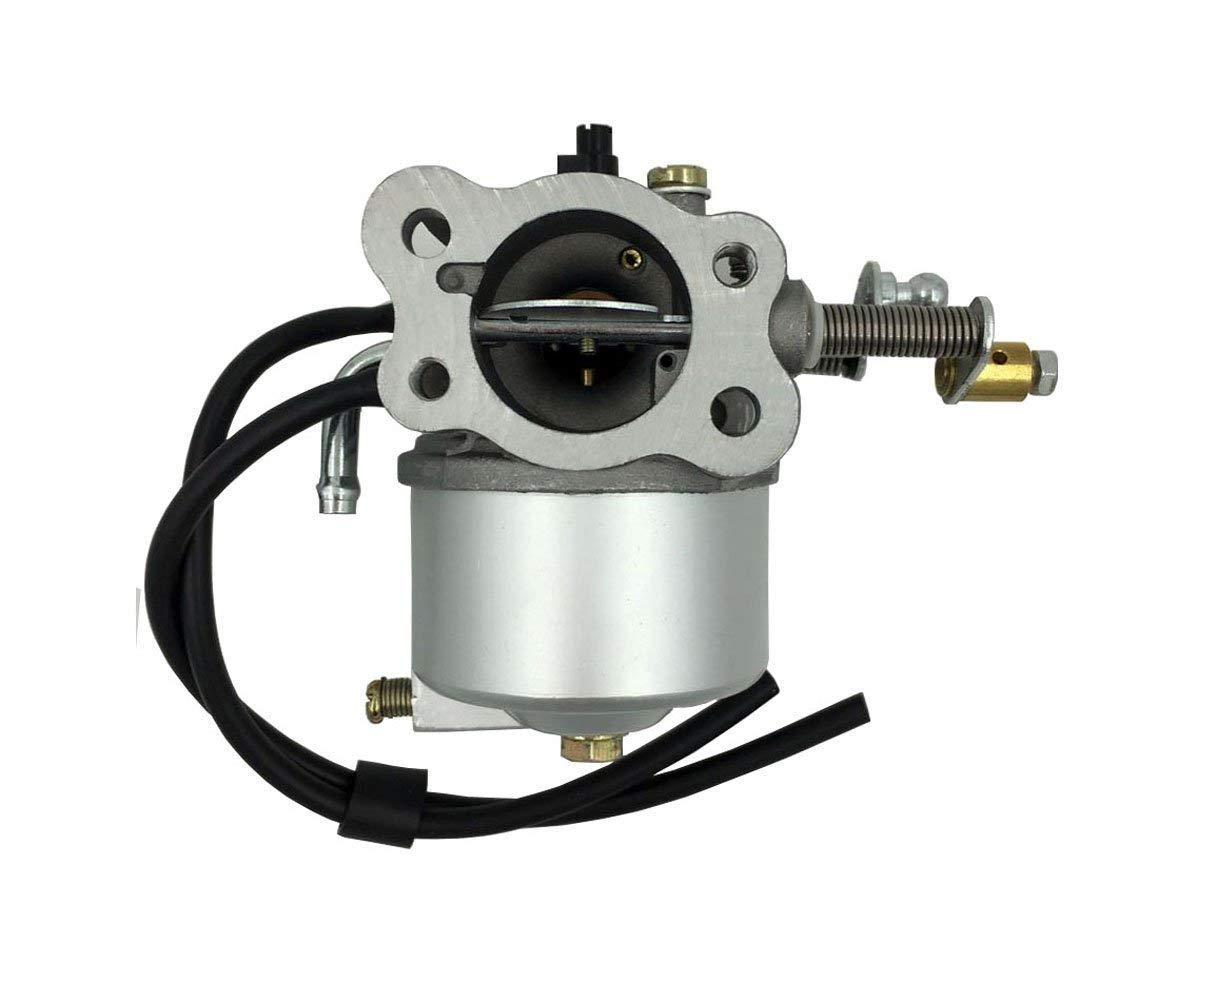 New Carburetor for EZGO Golf Cart 350cc Robin Engines 4 Cycle Stroke on